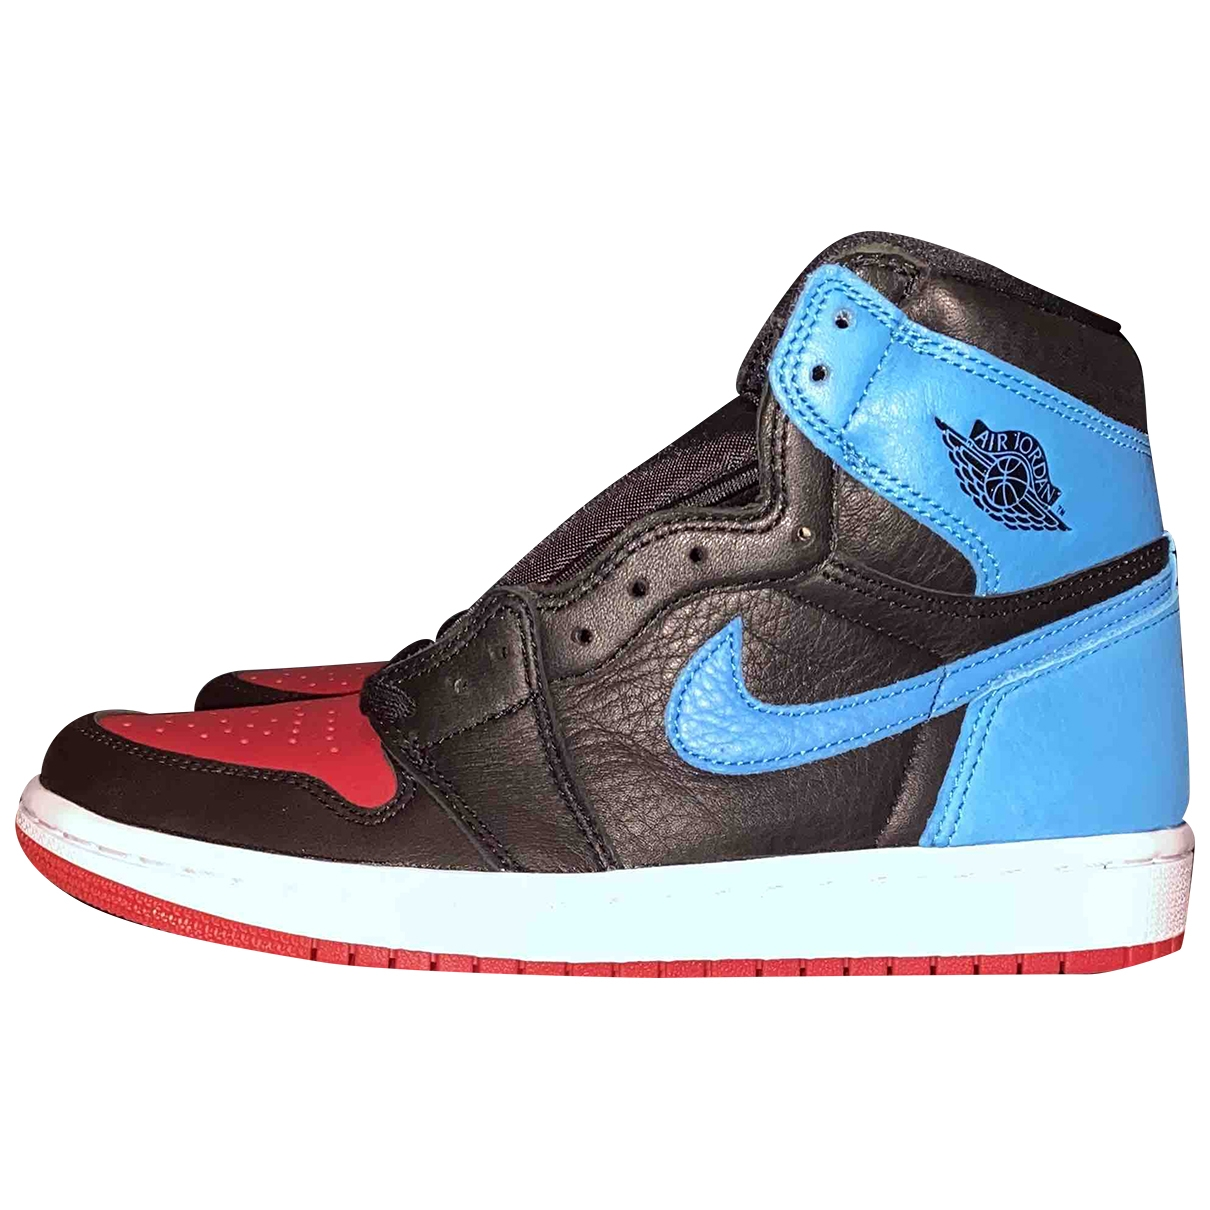 Jordan Air Jordan 1  Blue Leather Trainers for Women 40 EU